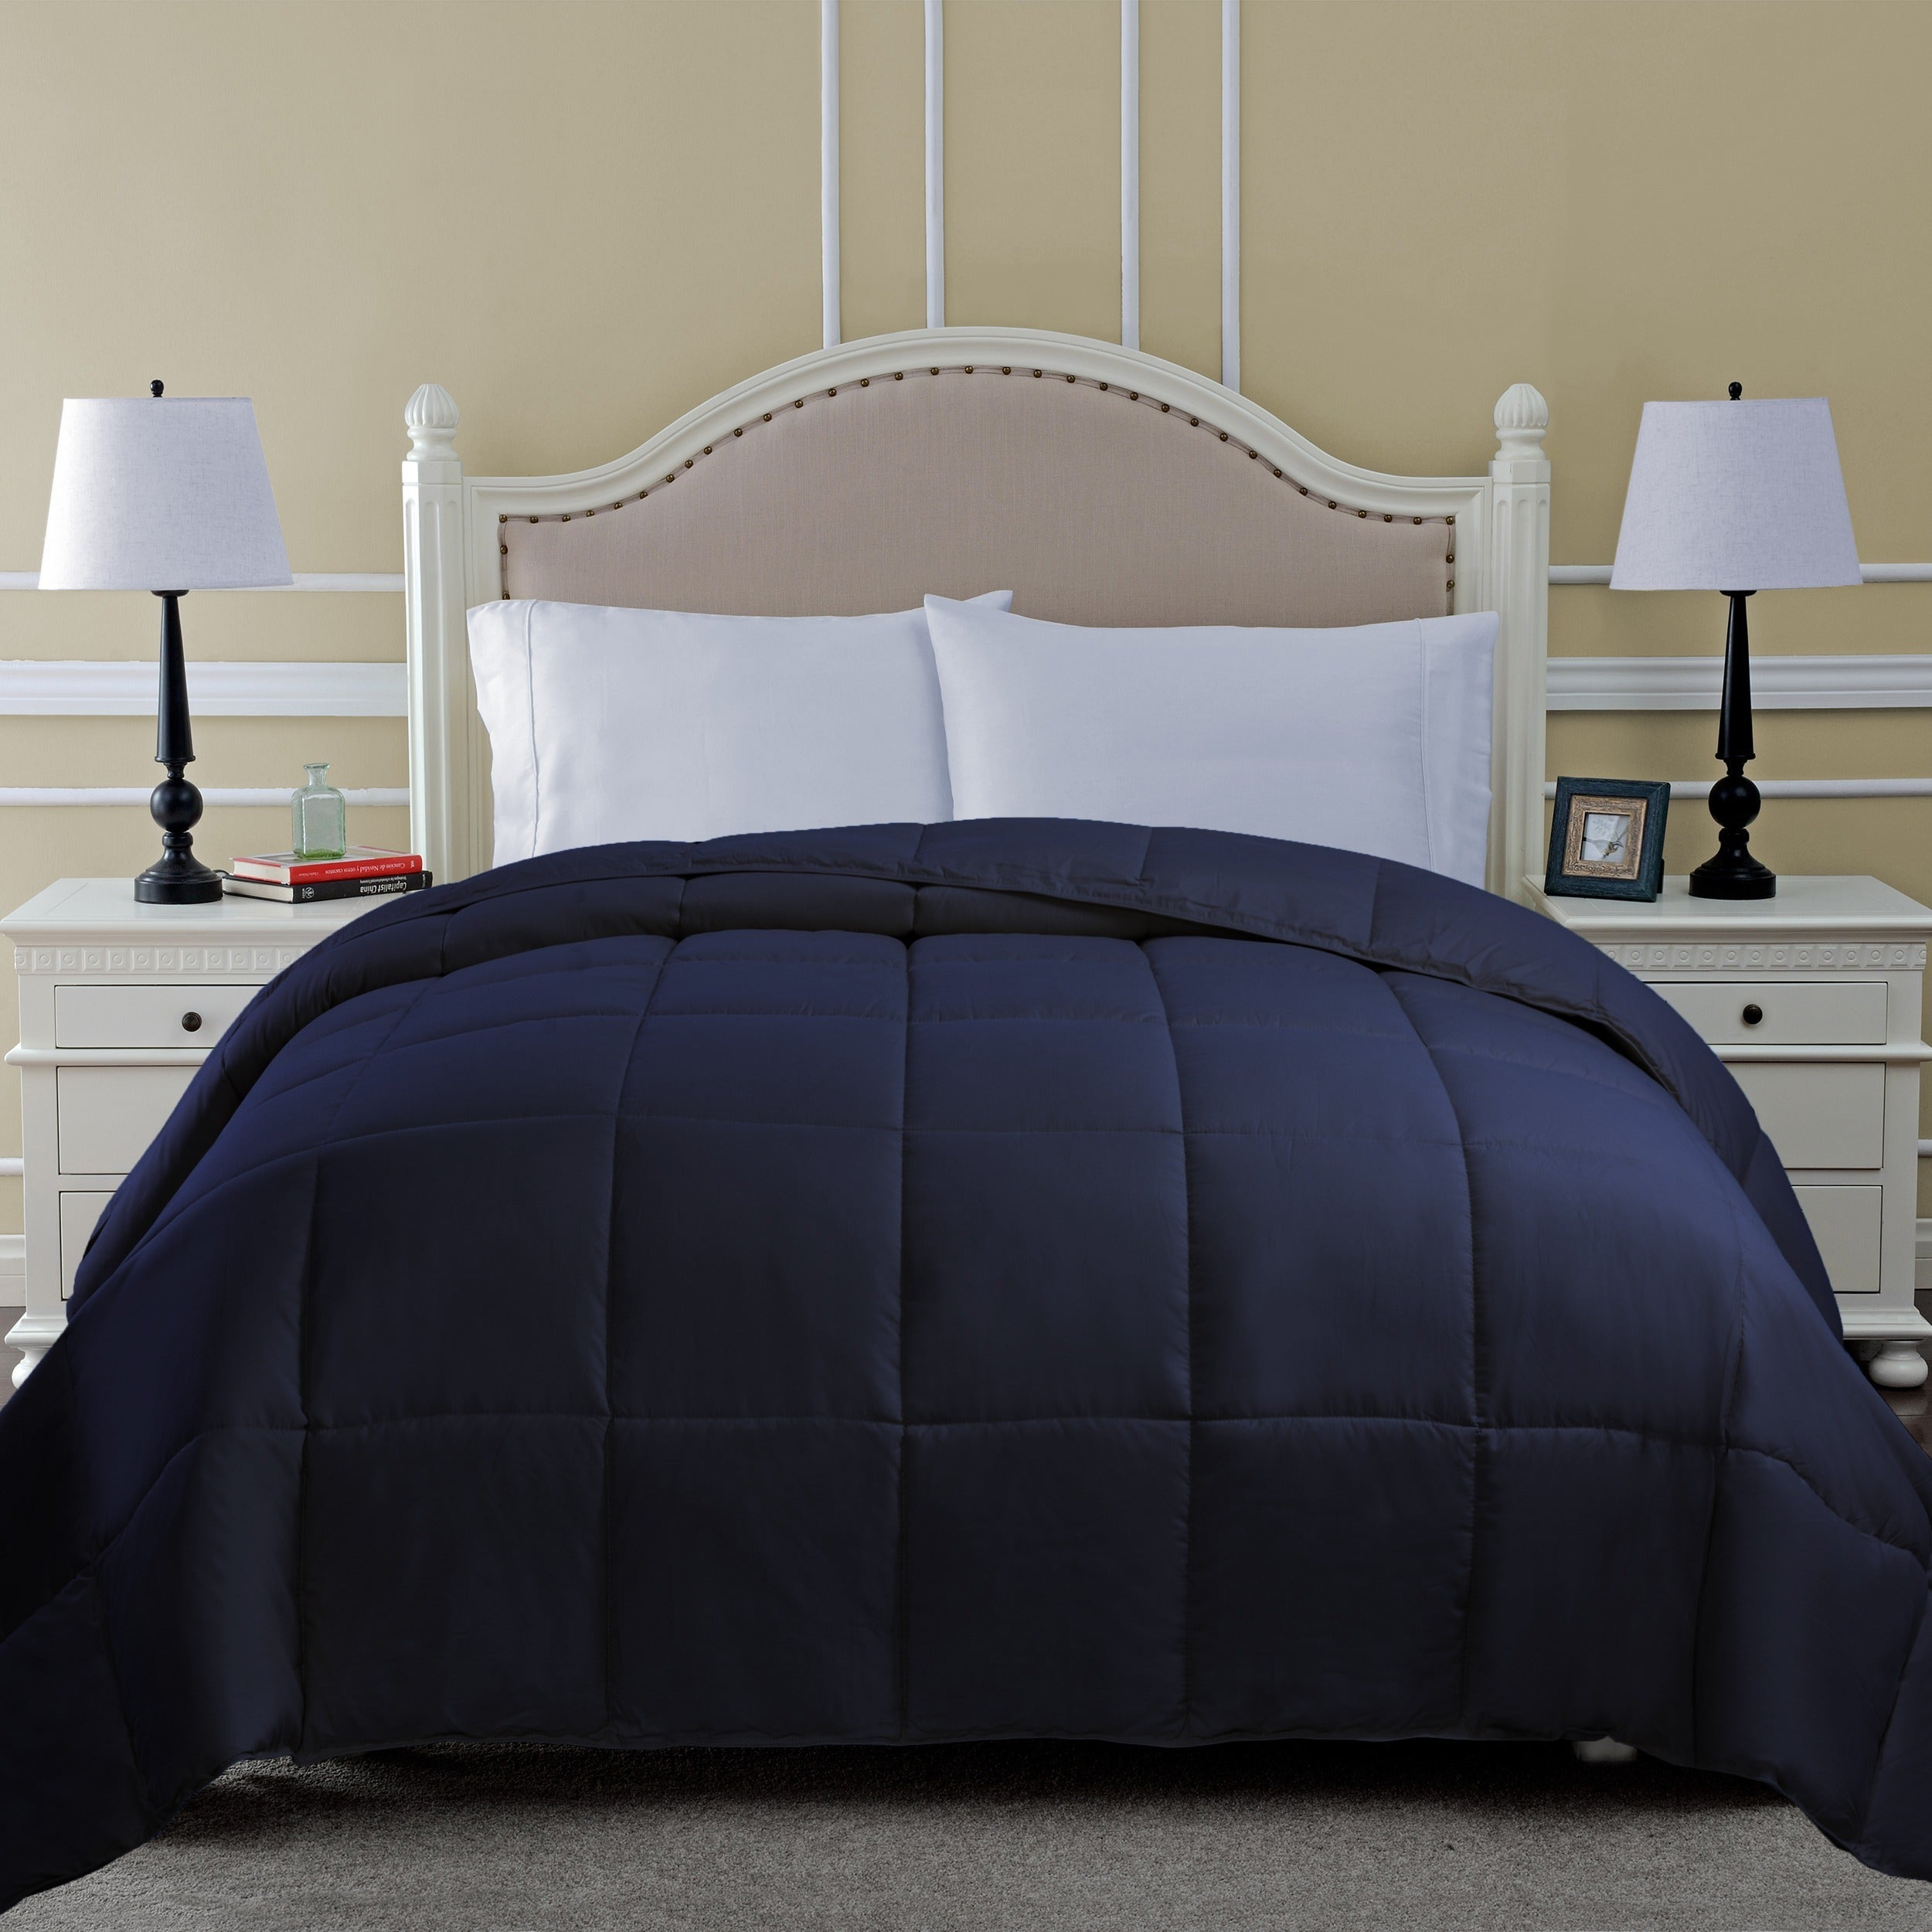 product down microfiber overstock color comforter bath shipping free bedding on over alternative orders solid